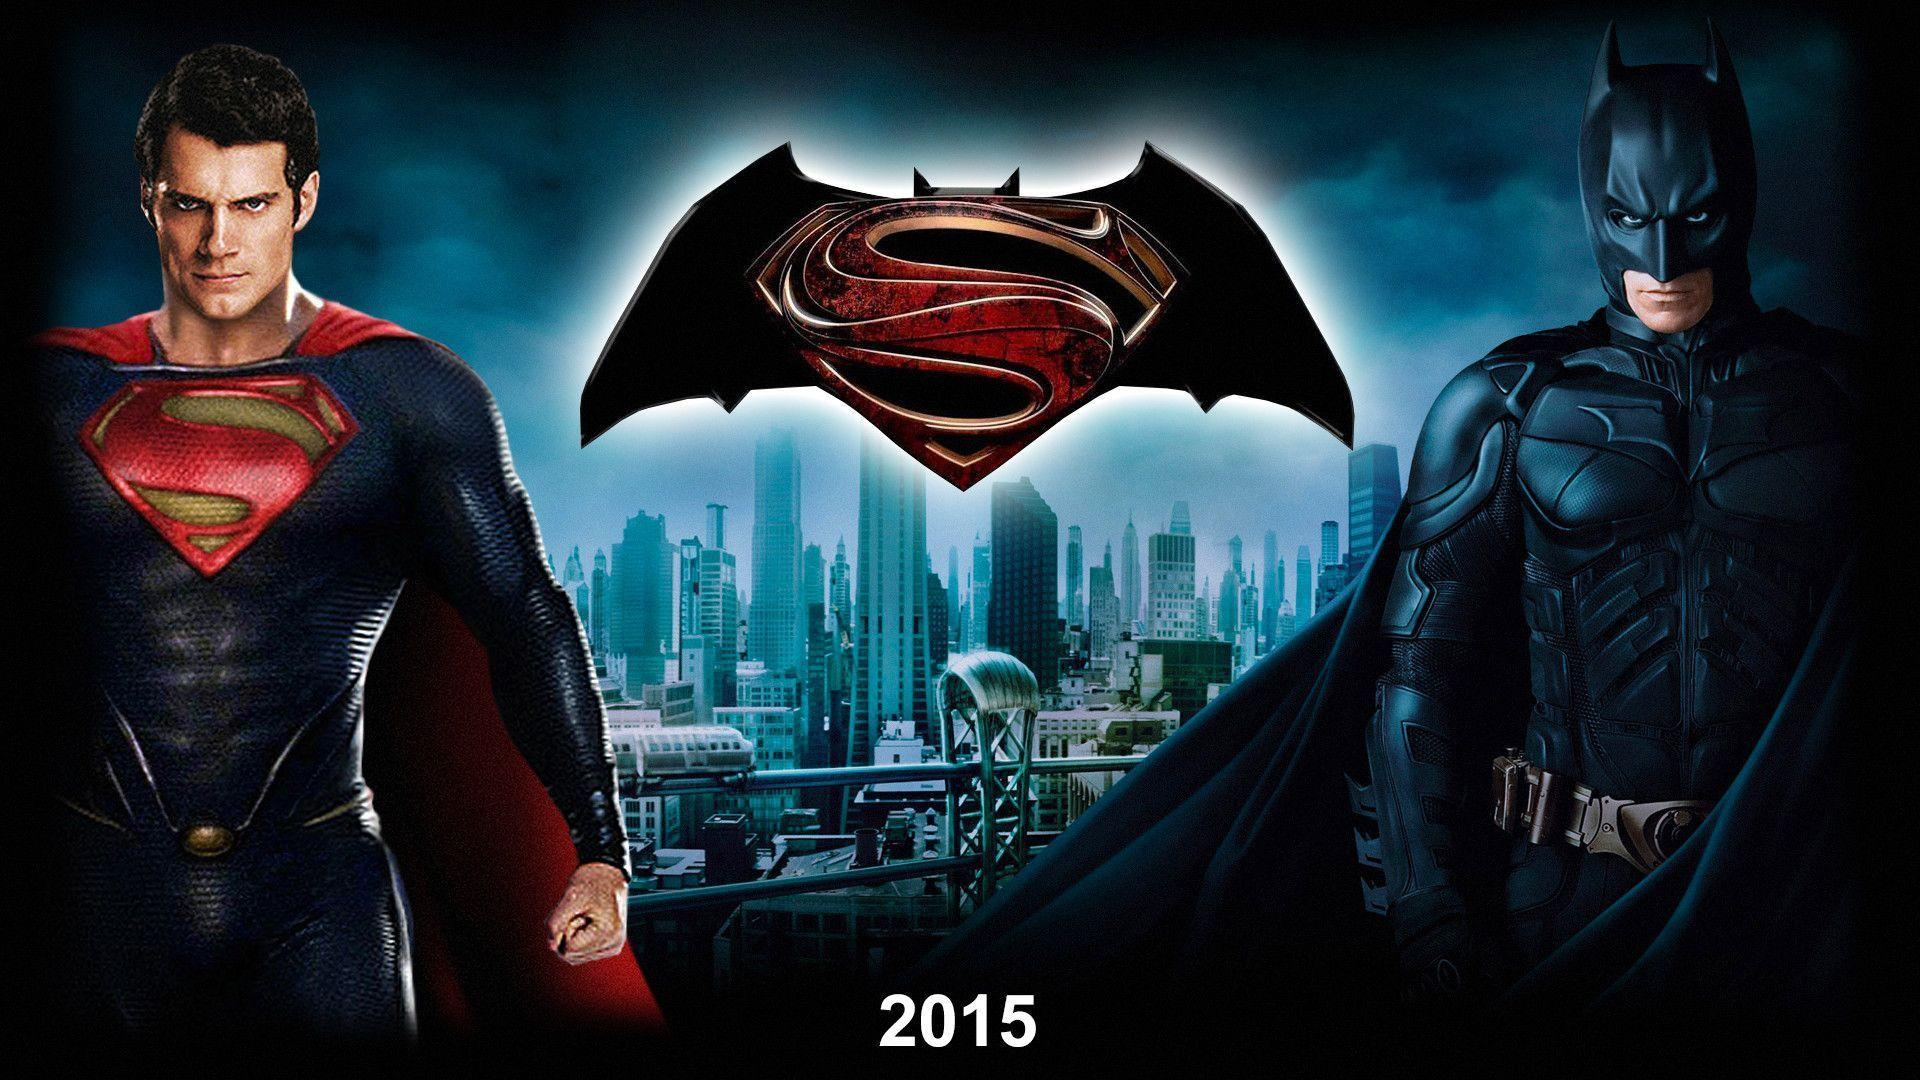 Batman Vs Superman 2015 Movie Wallpaper Wide or HD | Comics Wallpapers